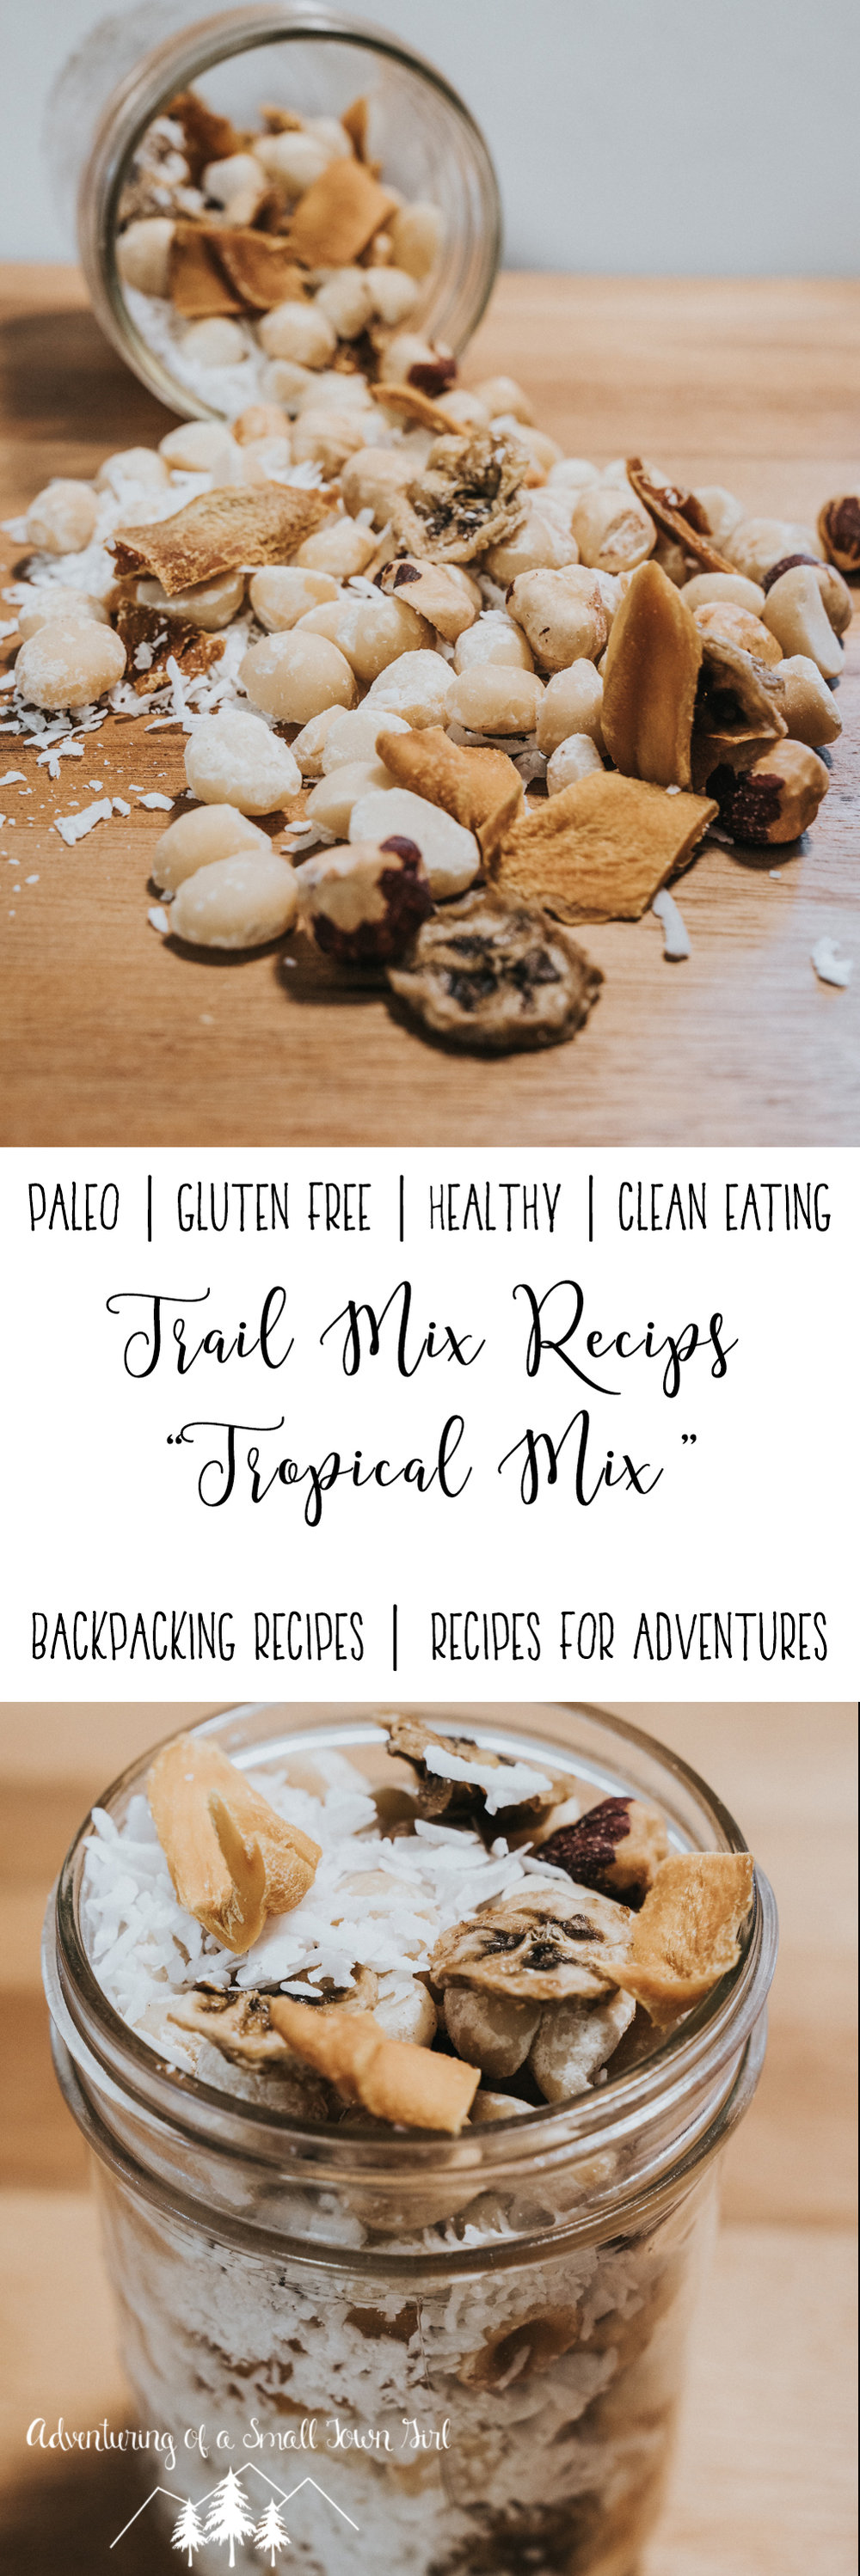 Homemade Trail Mix Recipe Tropical Trail Mix by Adventuring of a Small Town Girl (ASTG) - No Bake Raw Vegan Trail Mix - Make your own trail mix.jpg